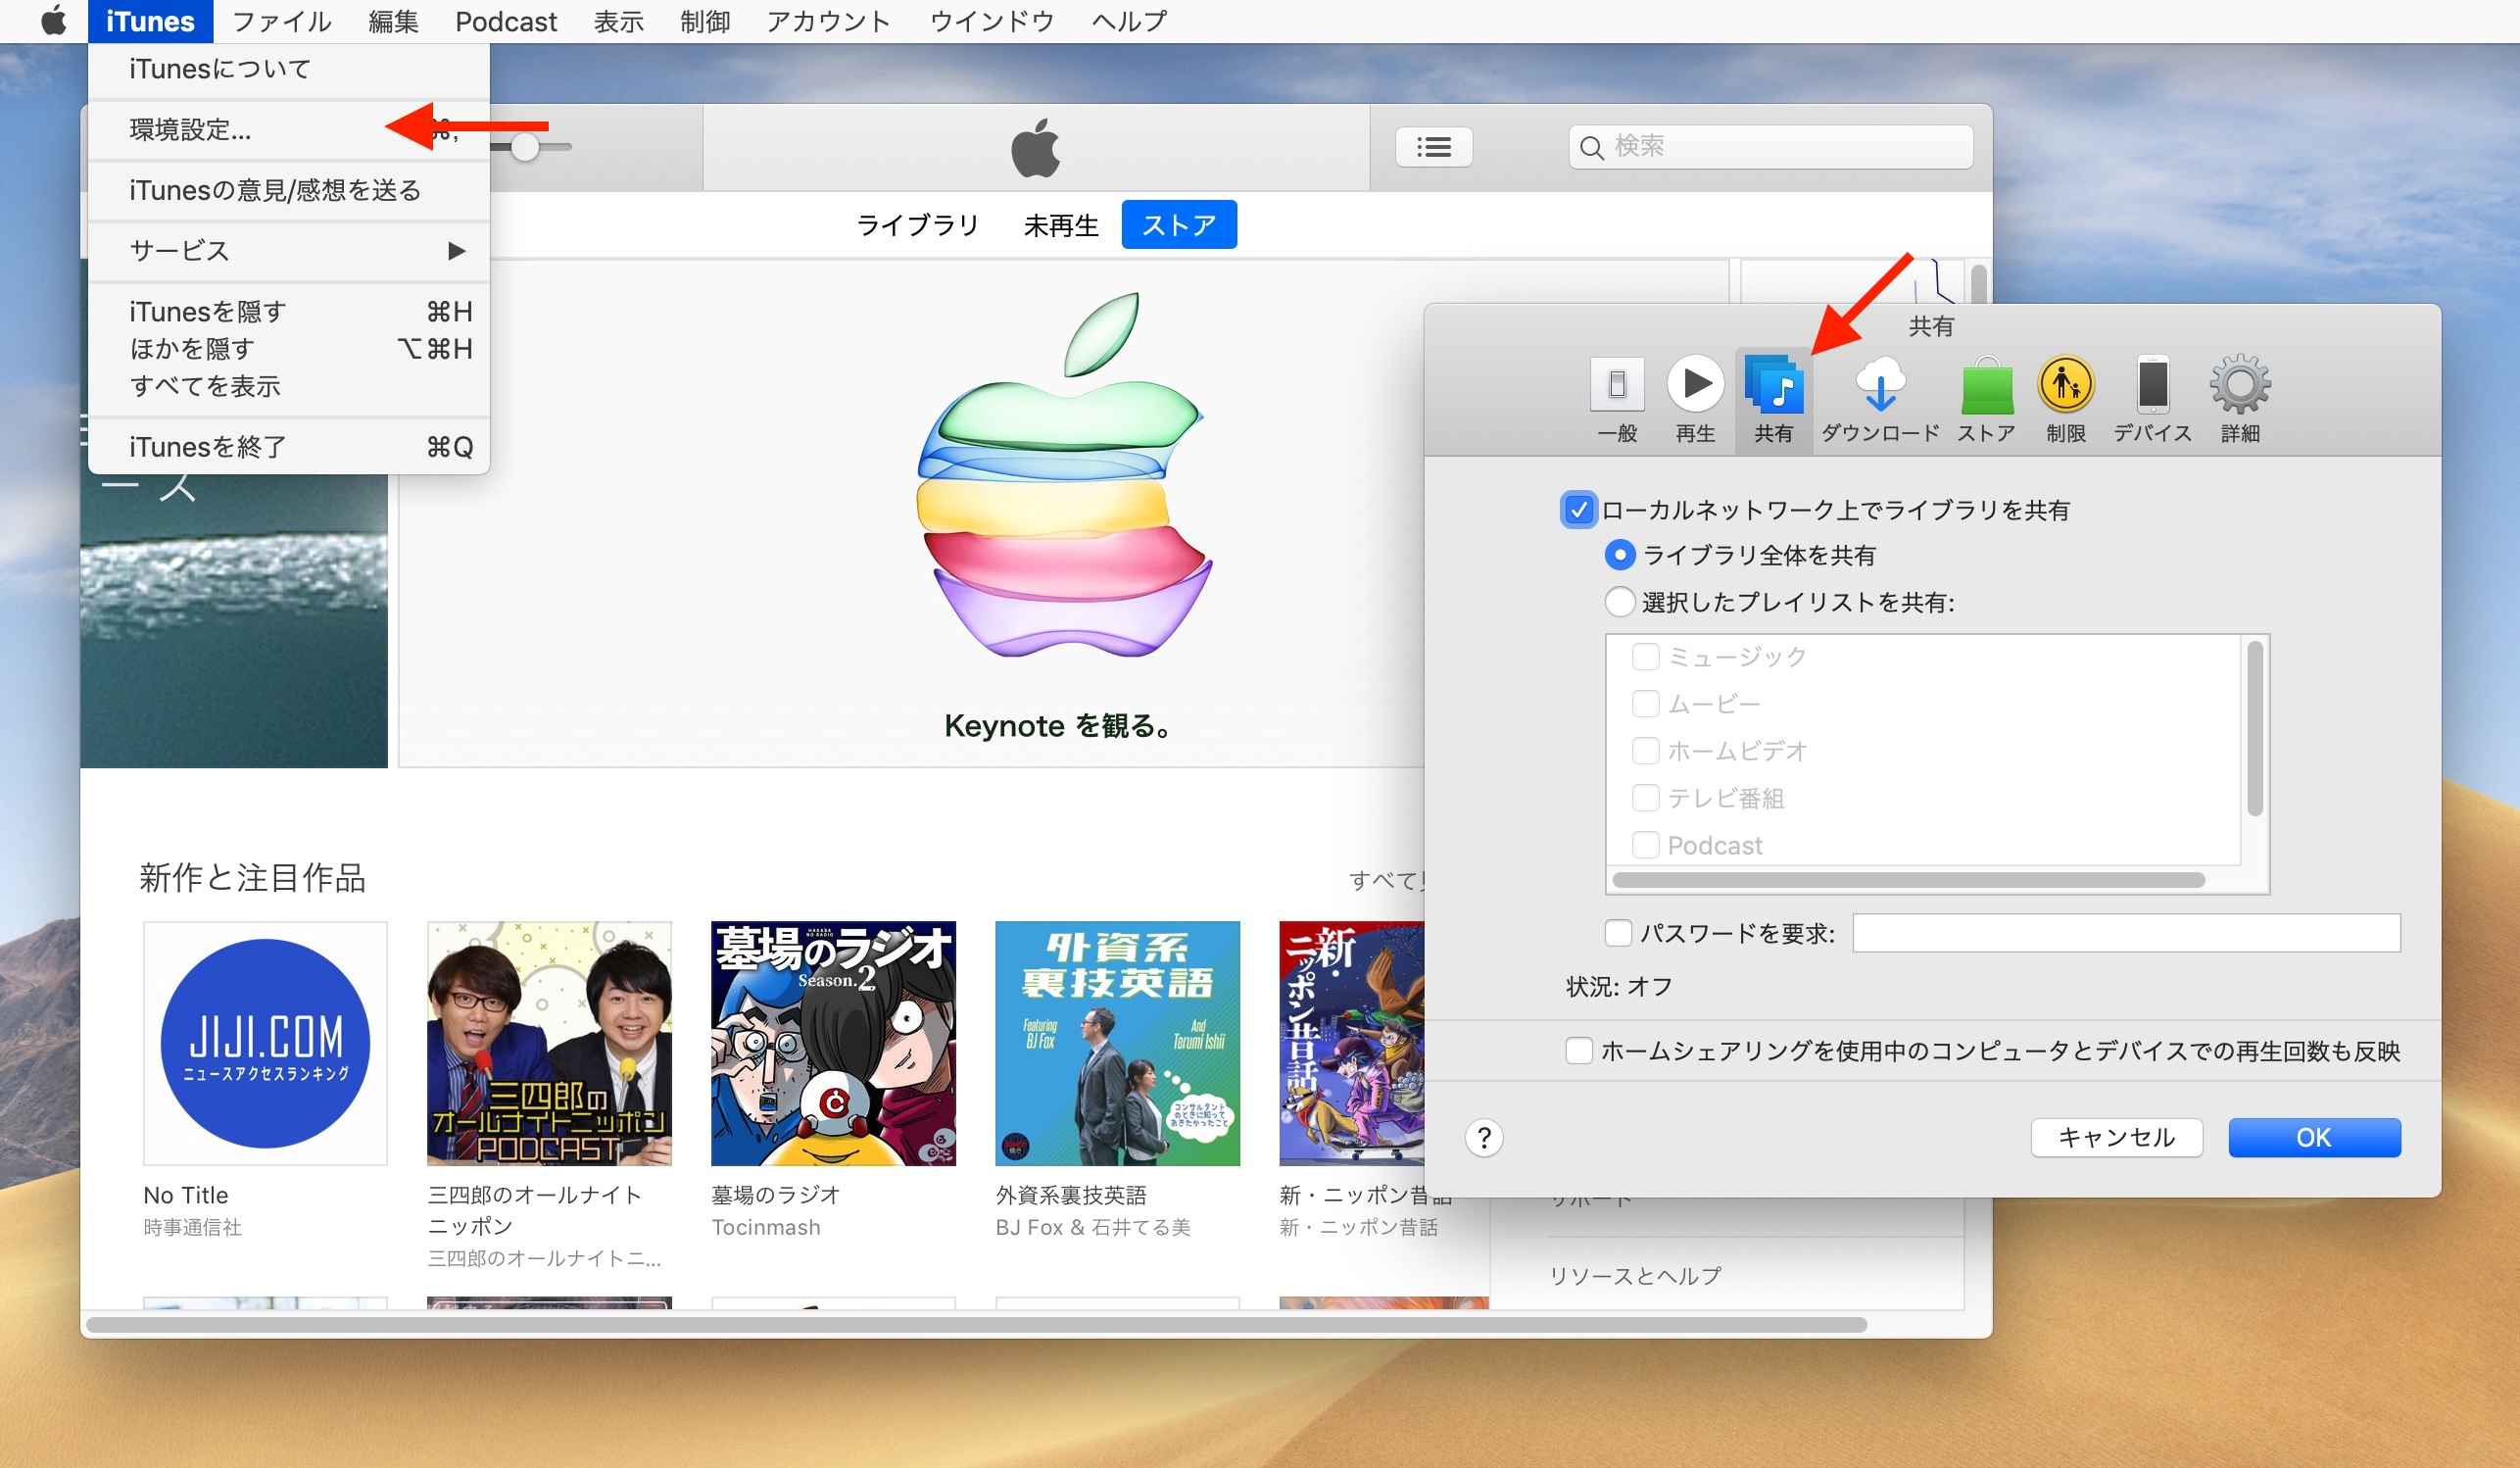 macOS 10.14 Mojaveのホームシェアリング